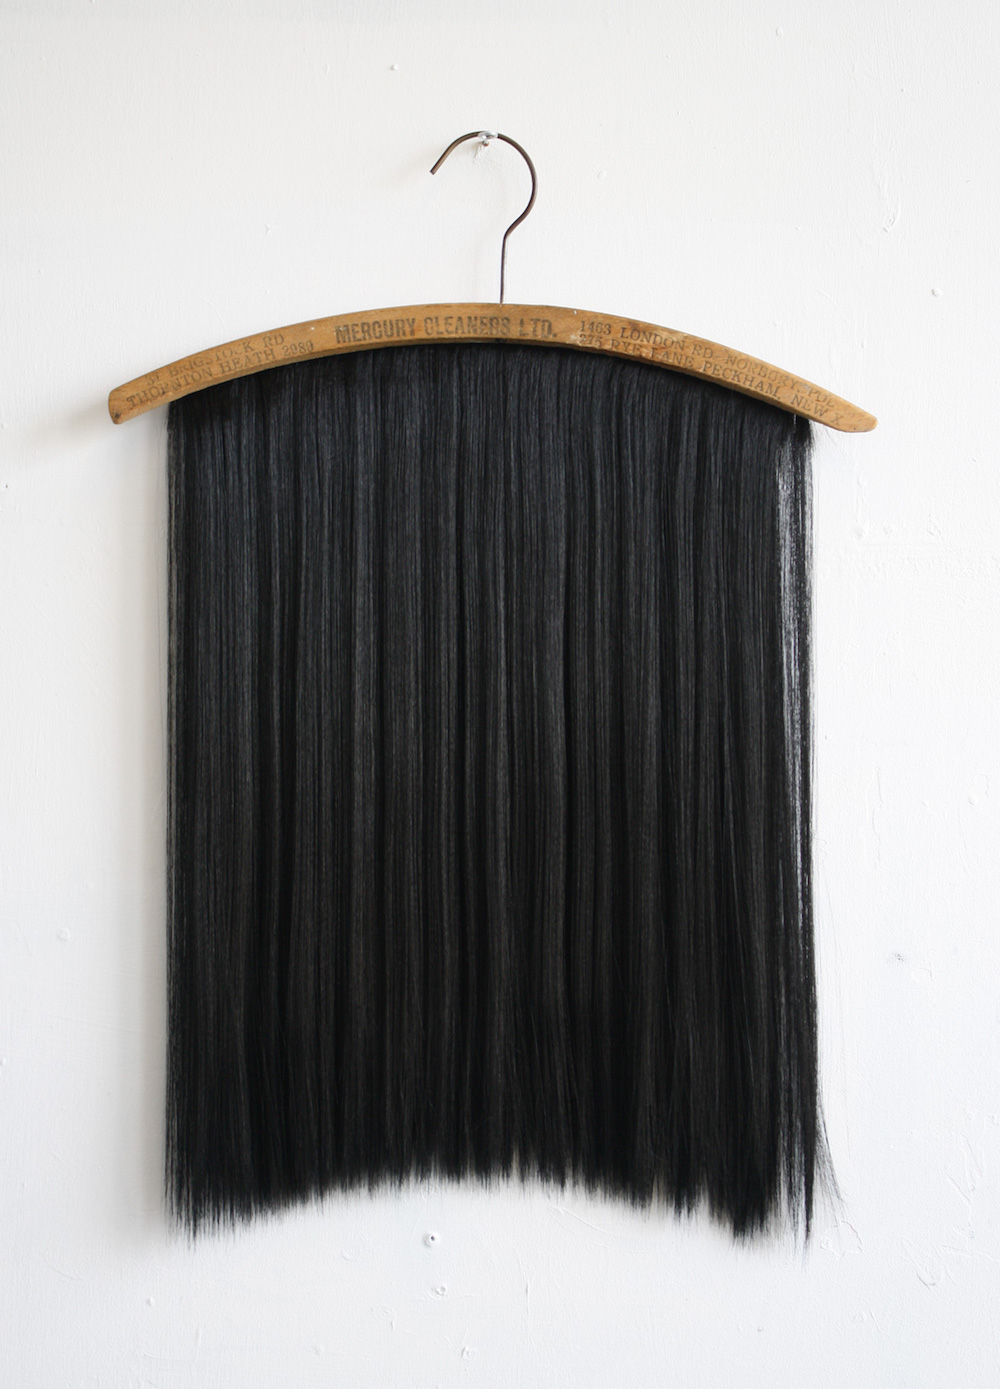 Chaetophobia (Mercury Cleaners LTD Peckham) 43 x 58 cm Found wooden hanger and synthetic hair 2015